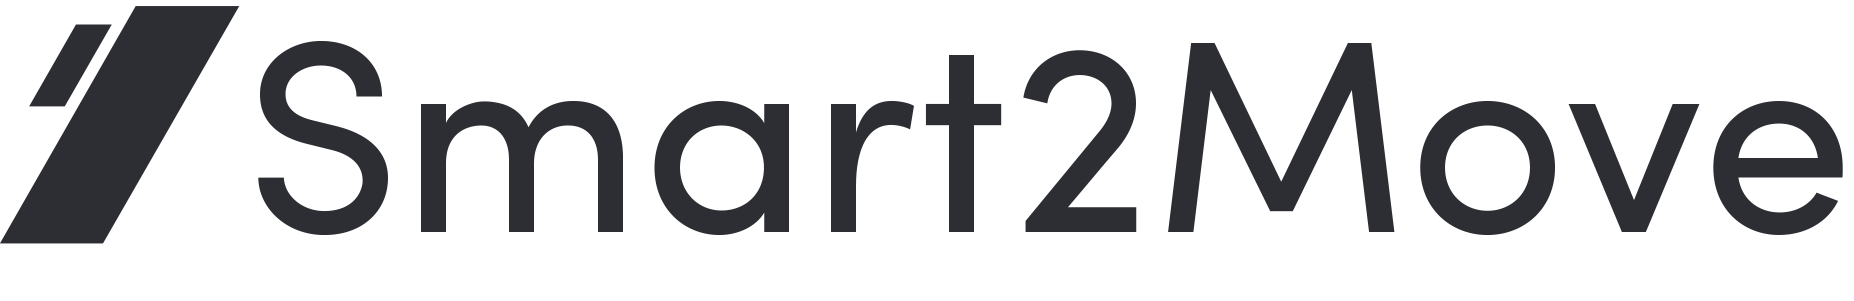 Smart2Move logo_black.png